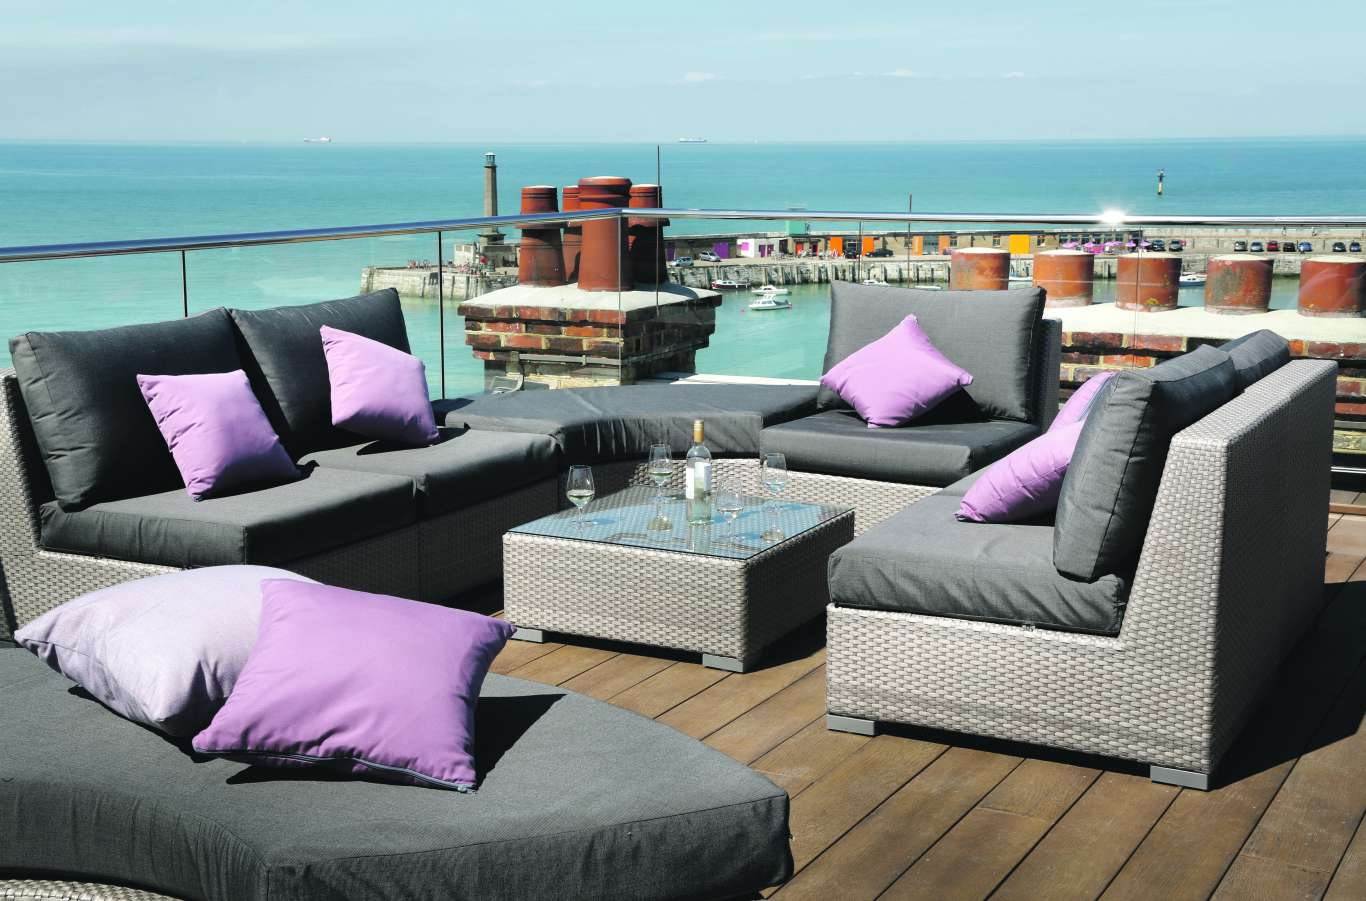 The rooftop terrace at the Sands Hotel. Photo: Sands